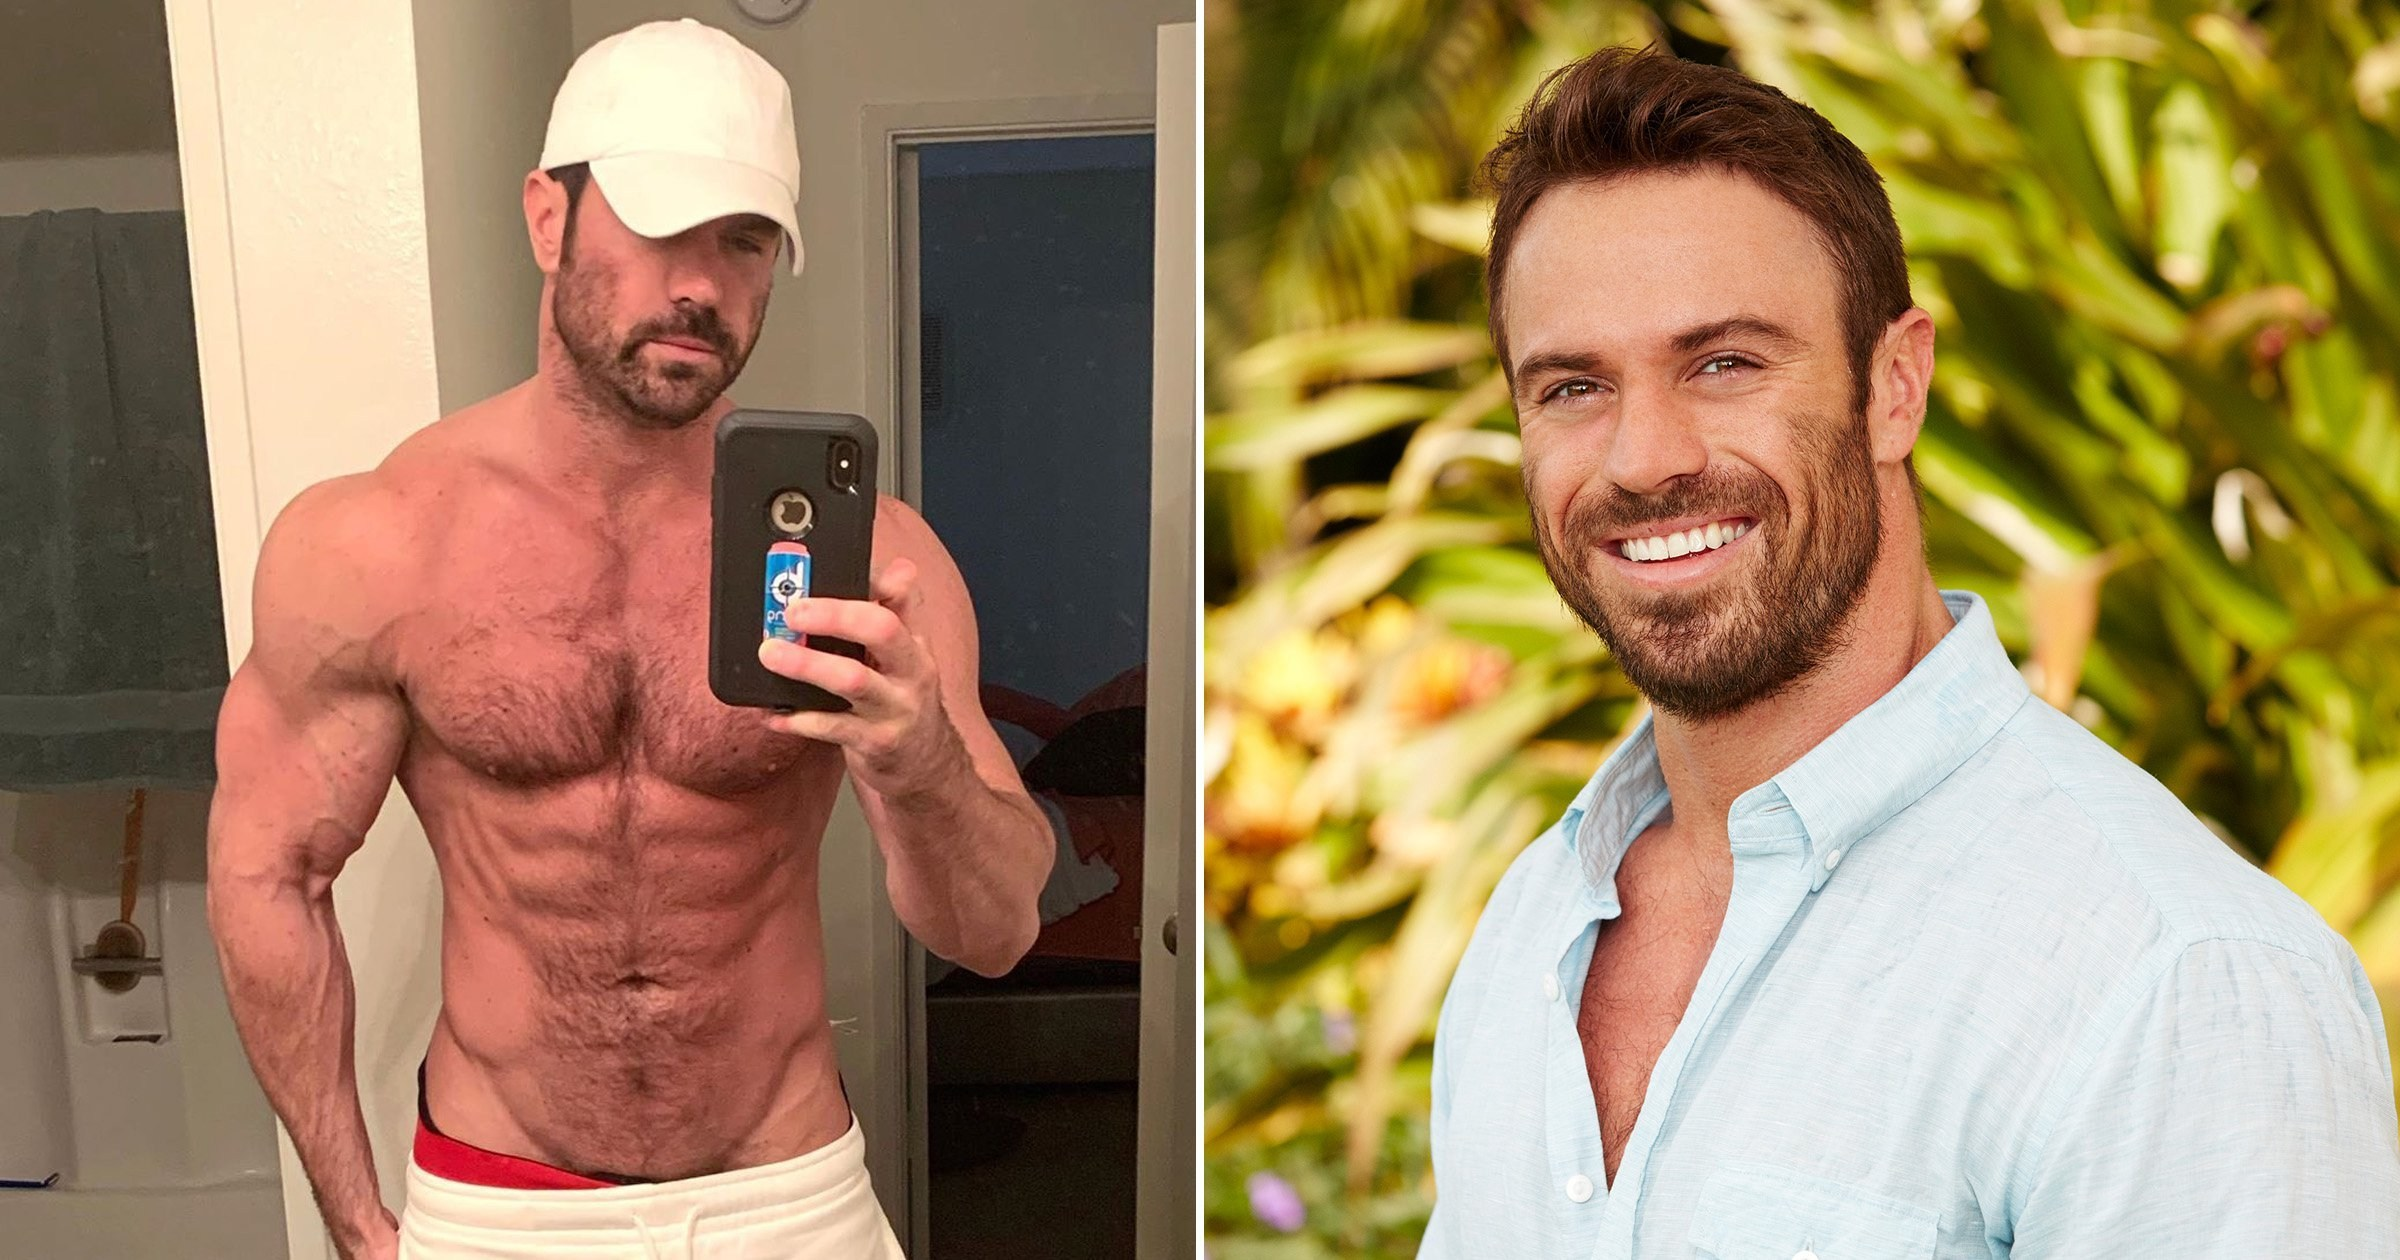 The Bachelorette's Chad Johnson is making sex tapes and plans to start his own 'porn palace'